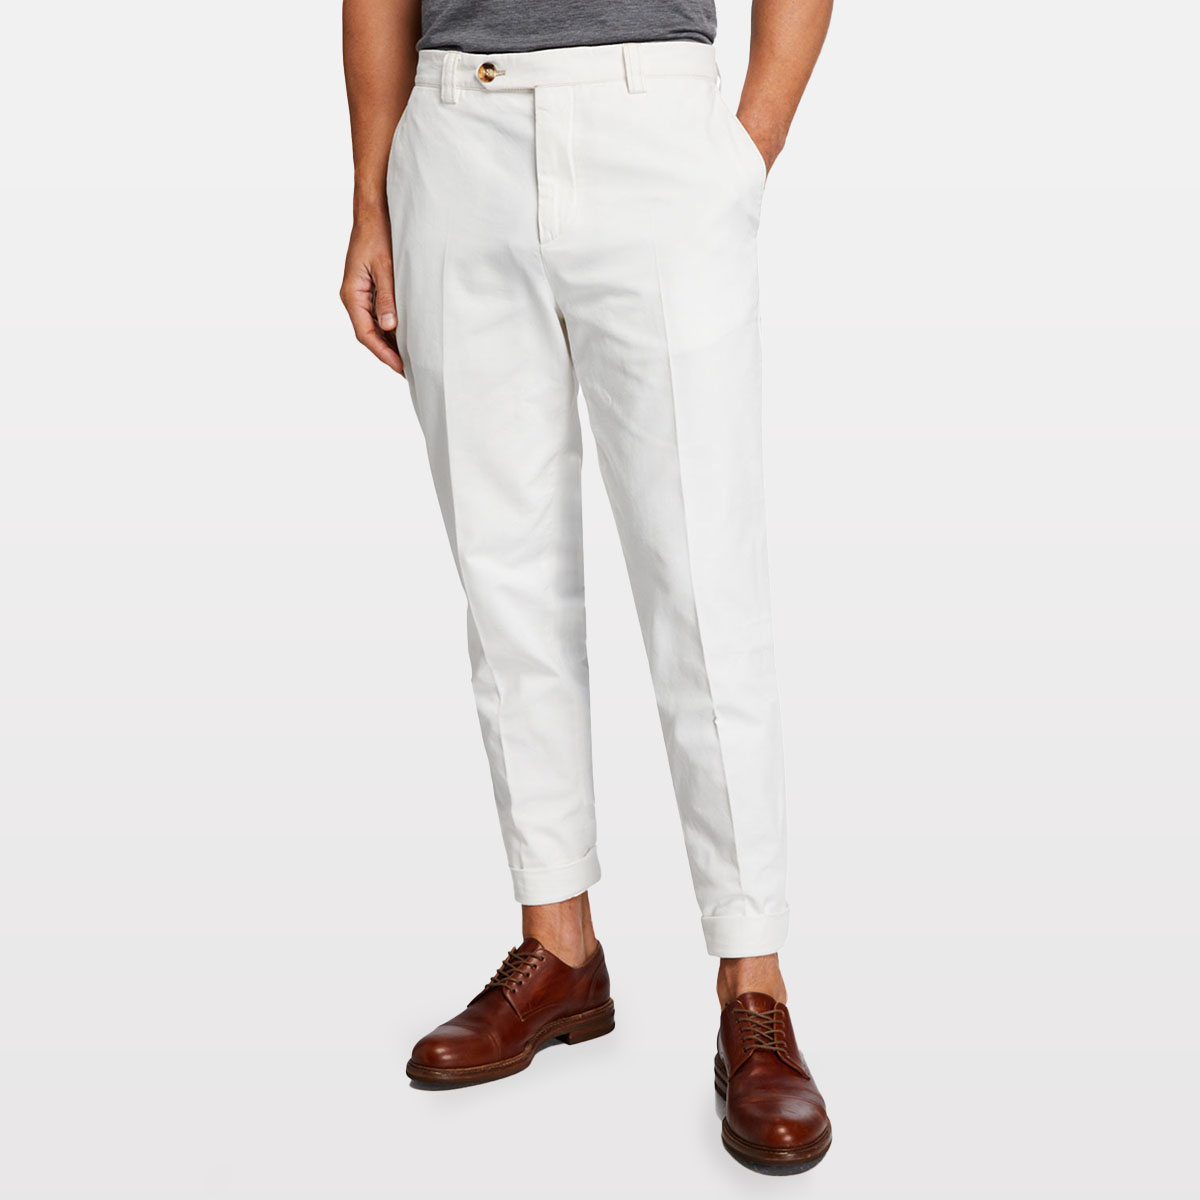 Brunello Cucinelli Leisure-Fit Cotton Pants